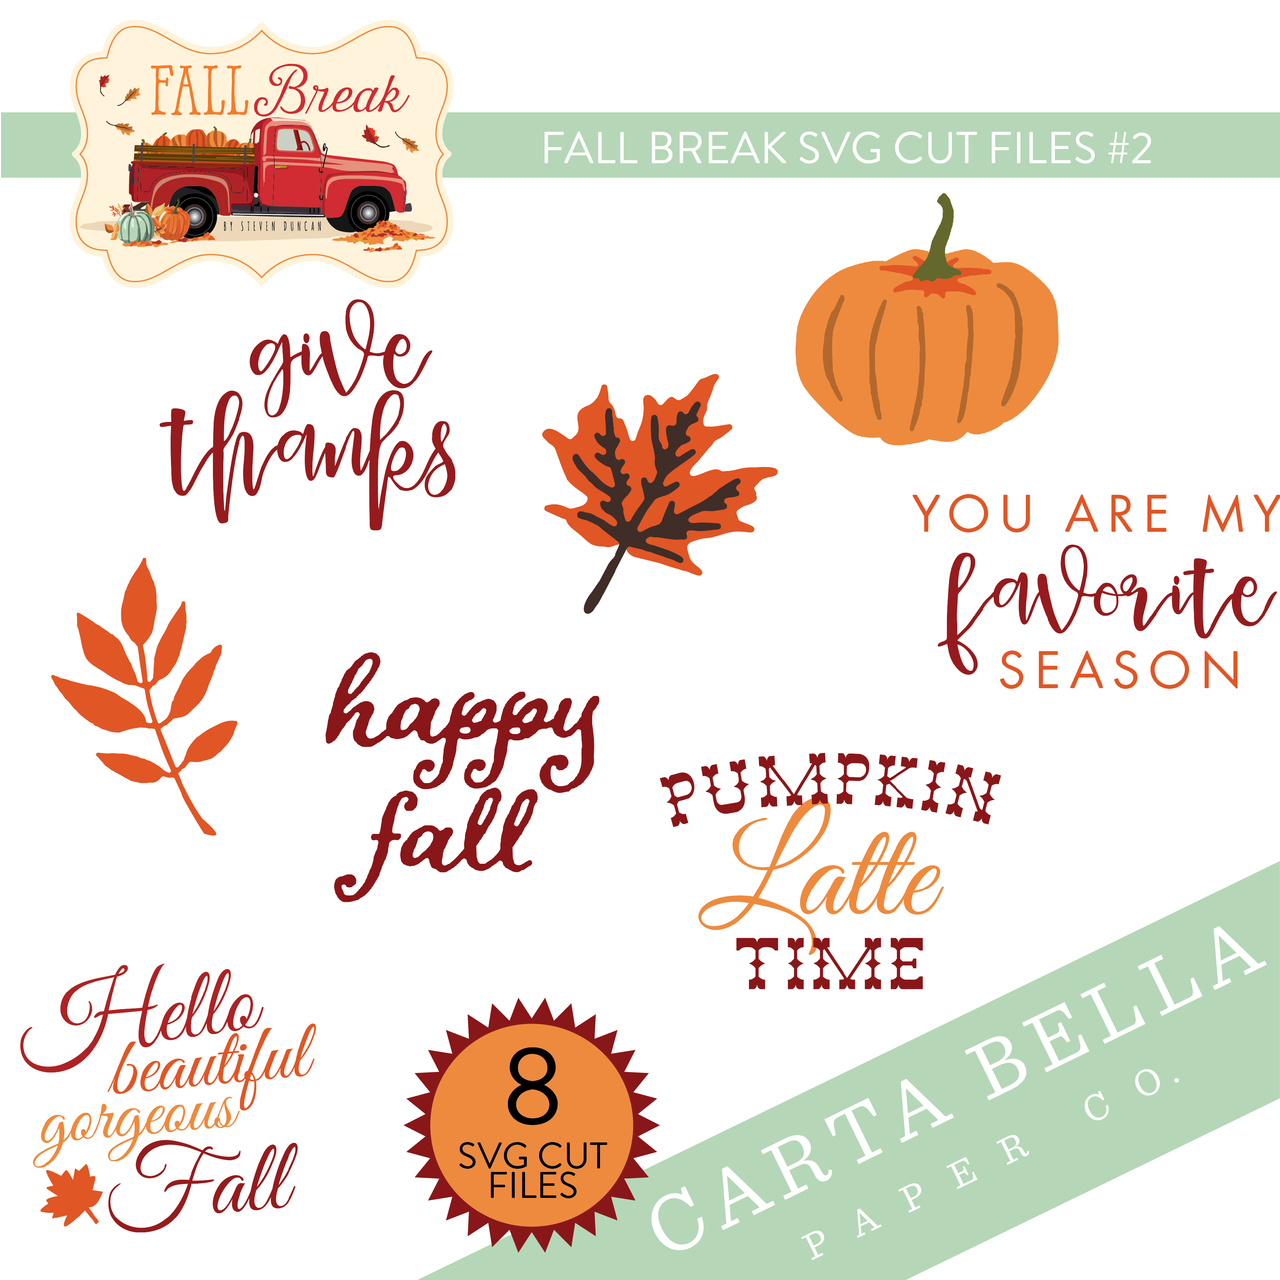 Fall Break SVG Cut Files #2